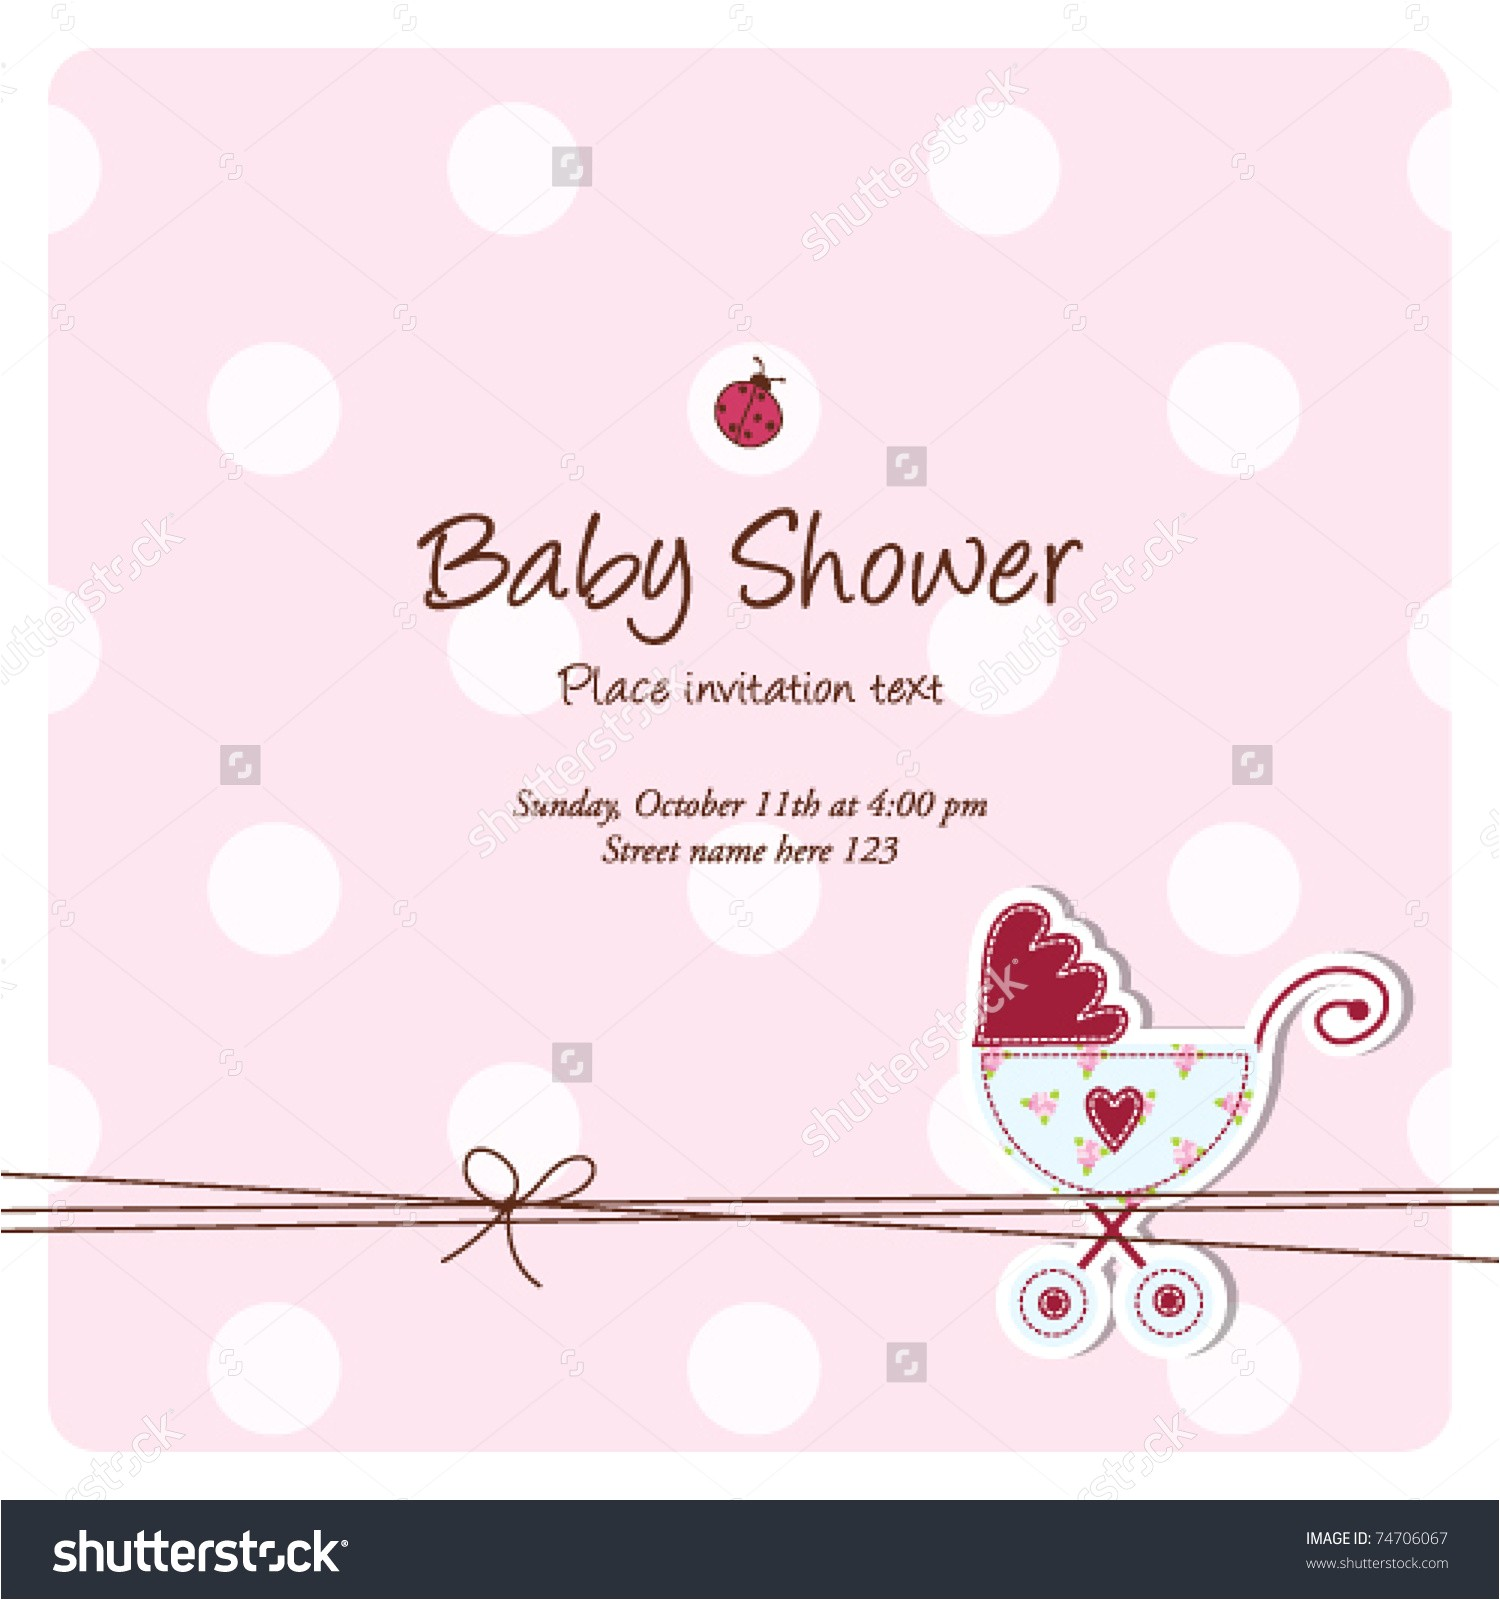 Animated Baby Shower Invitations Card Invitation Ideas Cute Babyshower Invitation Cards